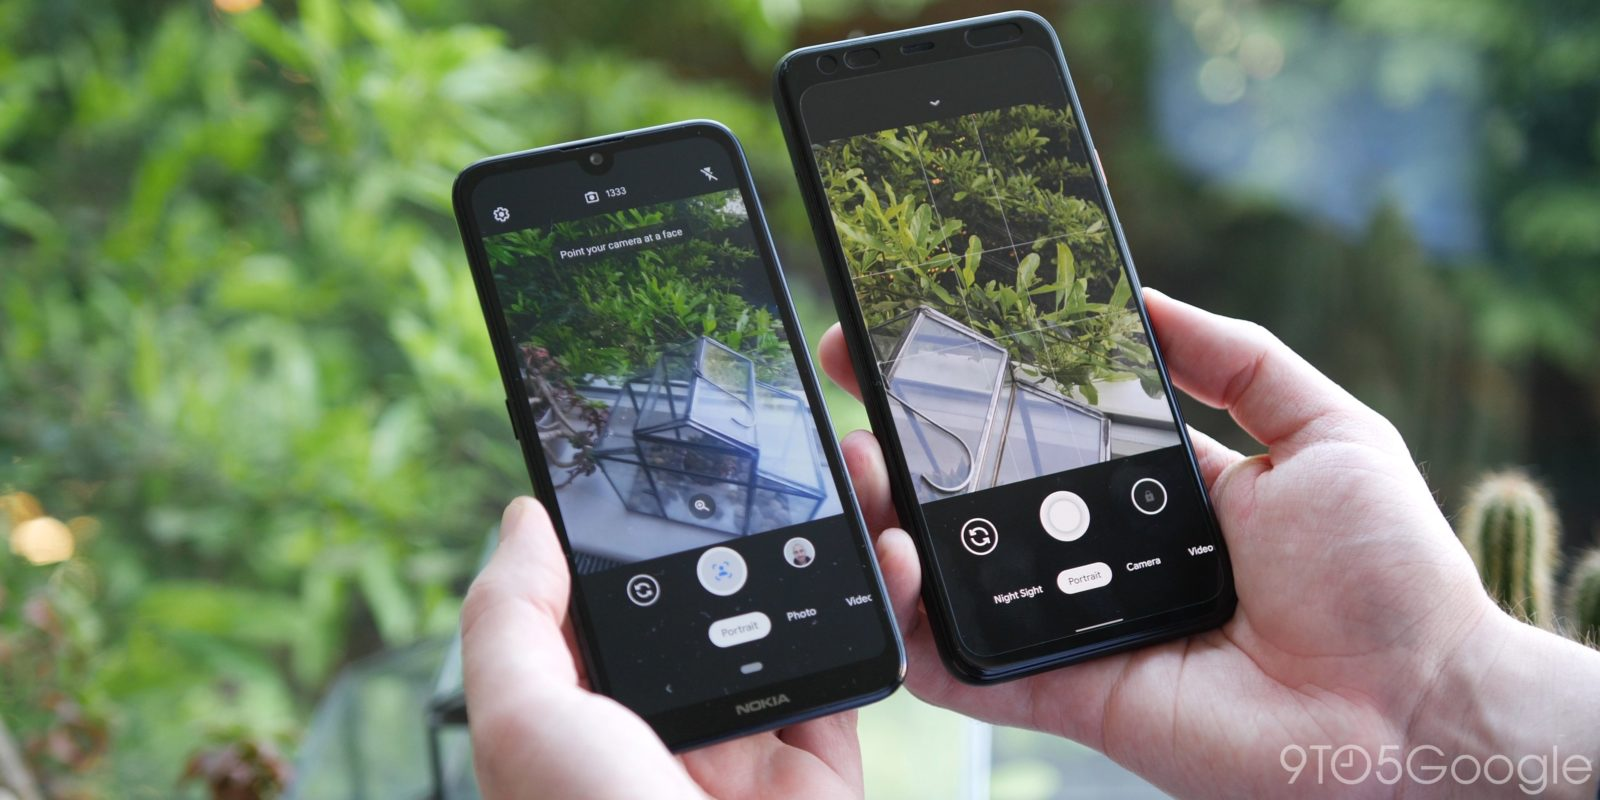 Google Camera Go hands-on: Pixel processing on low-end hardware? [Video]